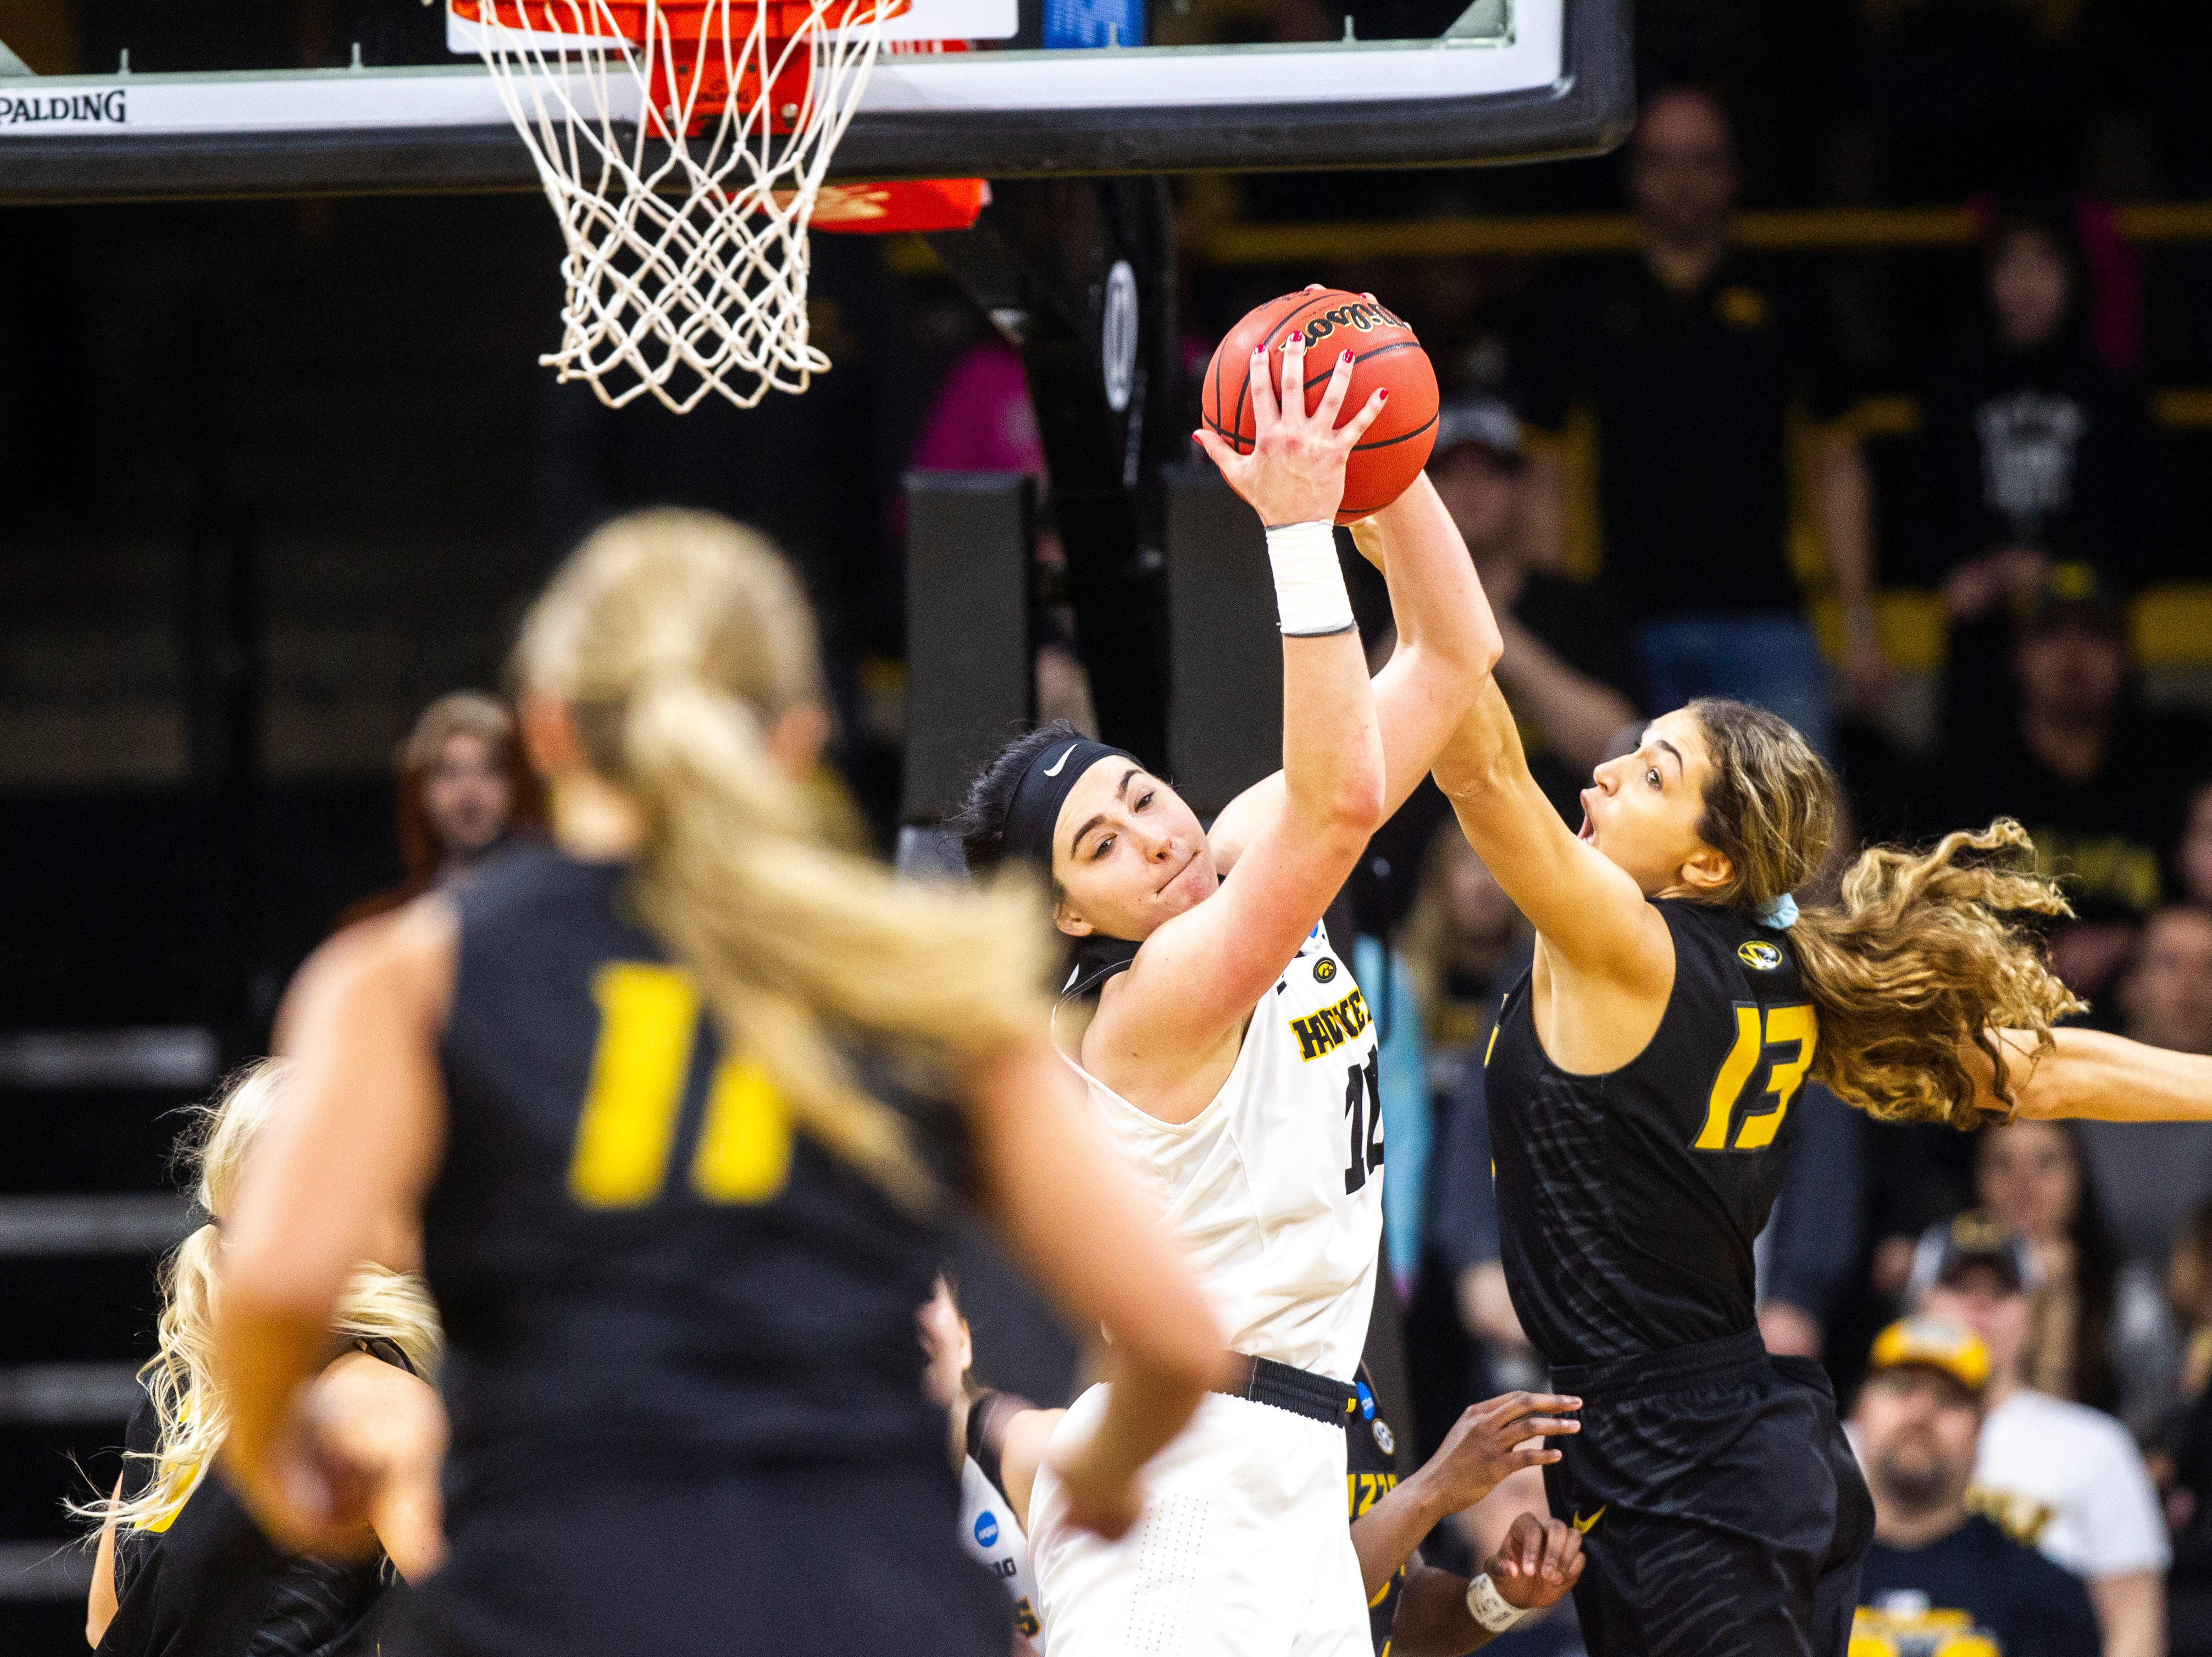 Iowa center Megan Gustafson (10) grabs a rebound against Missouri forward Hannah Schuchts (13) during a NCAA women's basketball tournament second-round game, Sunday, March 24, 2019, at Carver-Hawkeye Arena in Iowa City, Iowa.